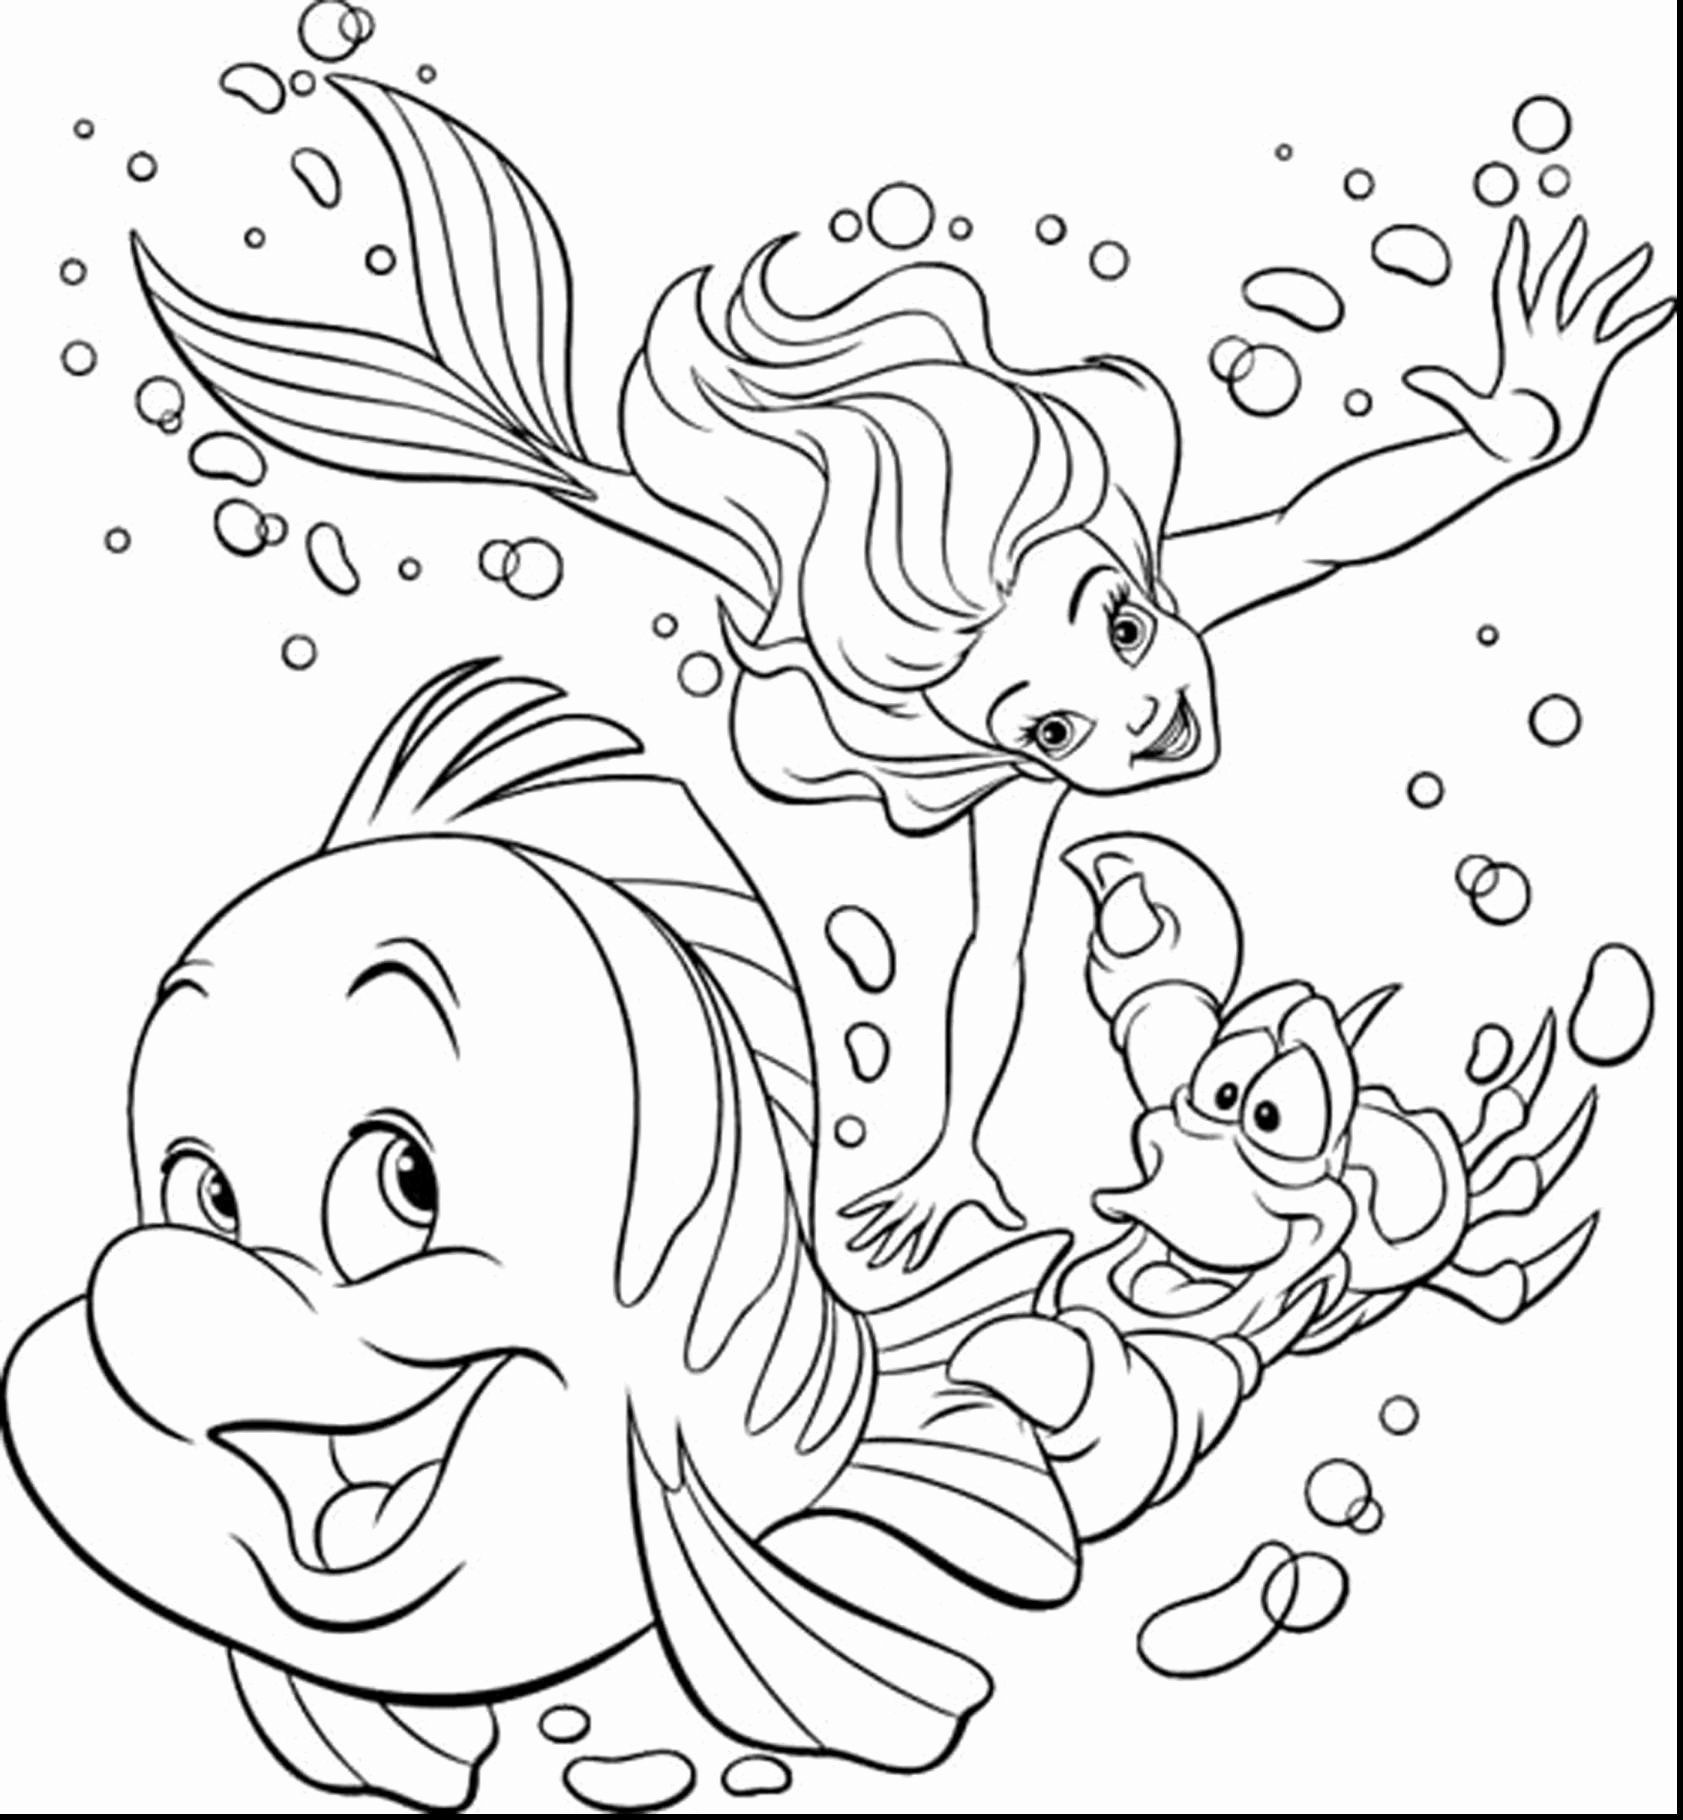 Disney Princess Coloring Pages Belle Awesome Disney Princess Color By Number Printab Ariel Coloring Pages Disney Princess Coloring Pages Mermaid Coloring Pages